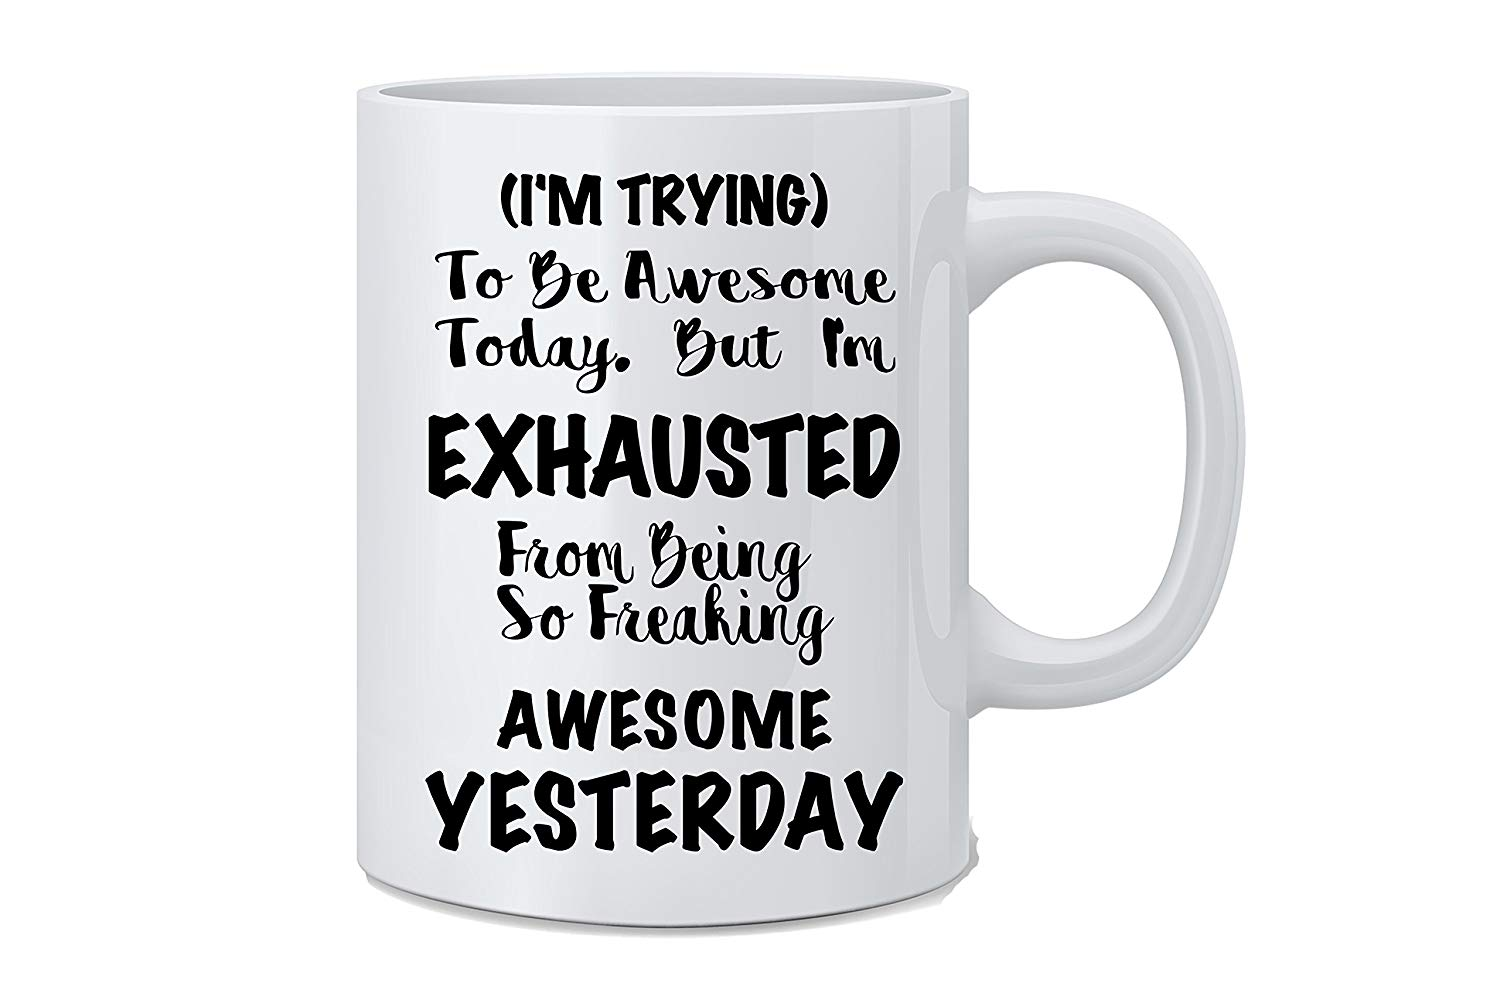 I'm Trying To Be Awesome Today But I'm Exhausted From Being So Freaking Awesome Yesterday Funny Coffee Mug image